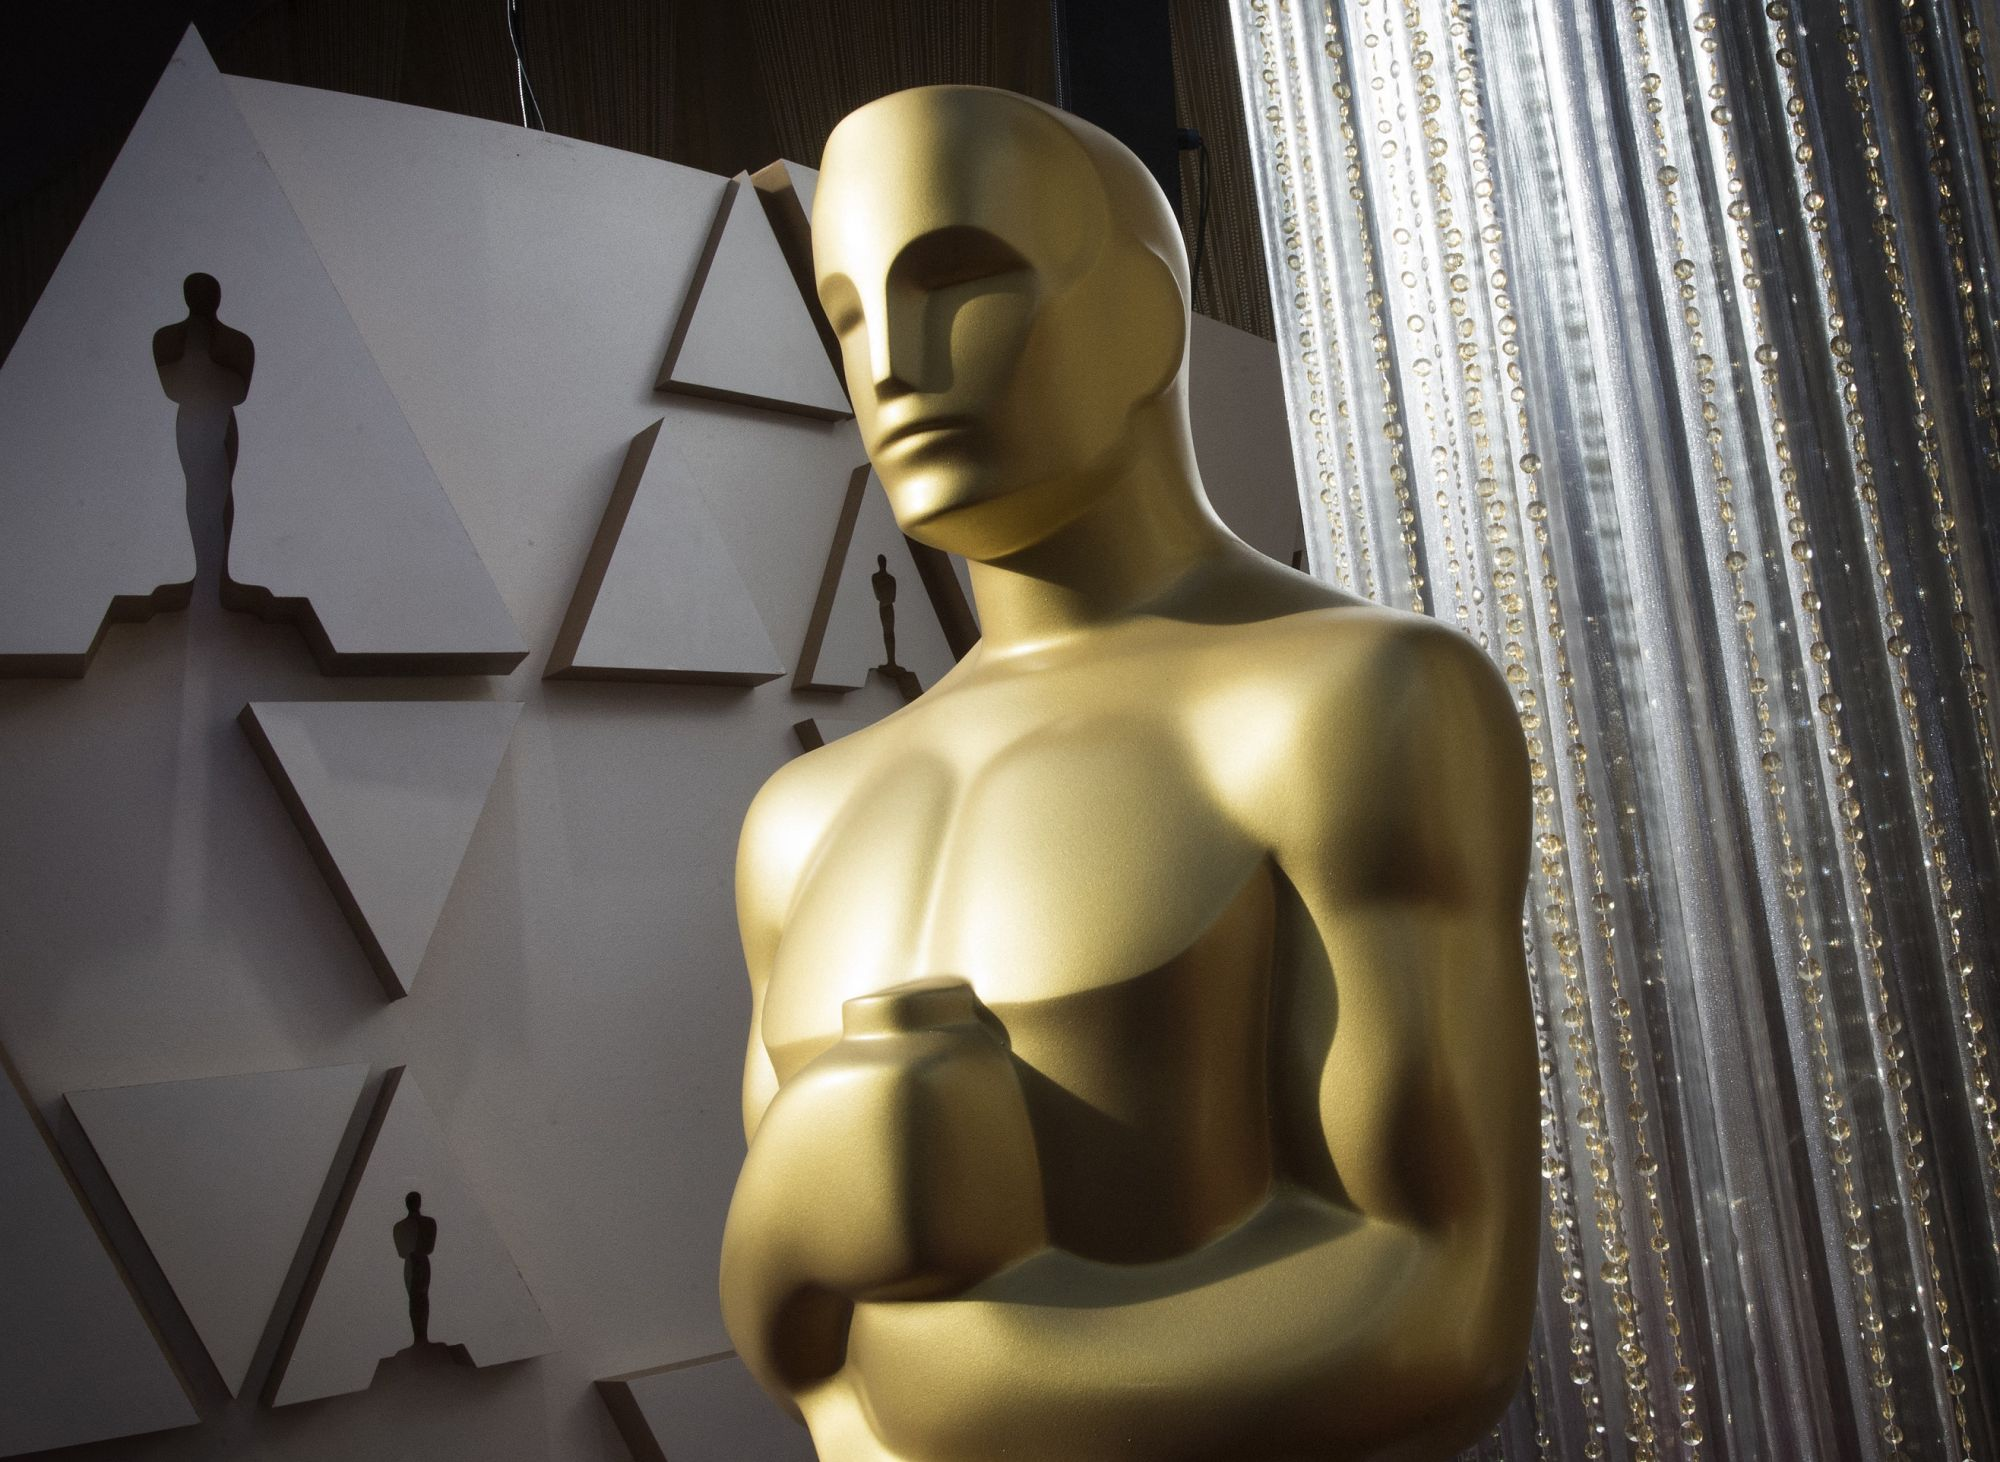 """(FILES) In this file photo an Oscars statue is displayed on the red carpet area on the eve of the 92nd Oscars ceremony at the Dolby Theatre in Hollywood, California, on February 8, 2020. - This year's Oscars will be broadcast live and """"in-person"""" from multiple locations, the Academy said on February 10, 2021, as details of Hollywood's pandemic-delayed big night finally begin to take shape. The Academy Awards in recent decades have taken place at the Dolby Theatre in Los Angeles, but with the United States'"""